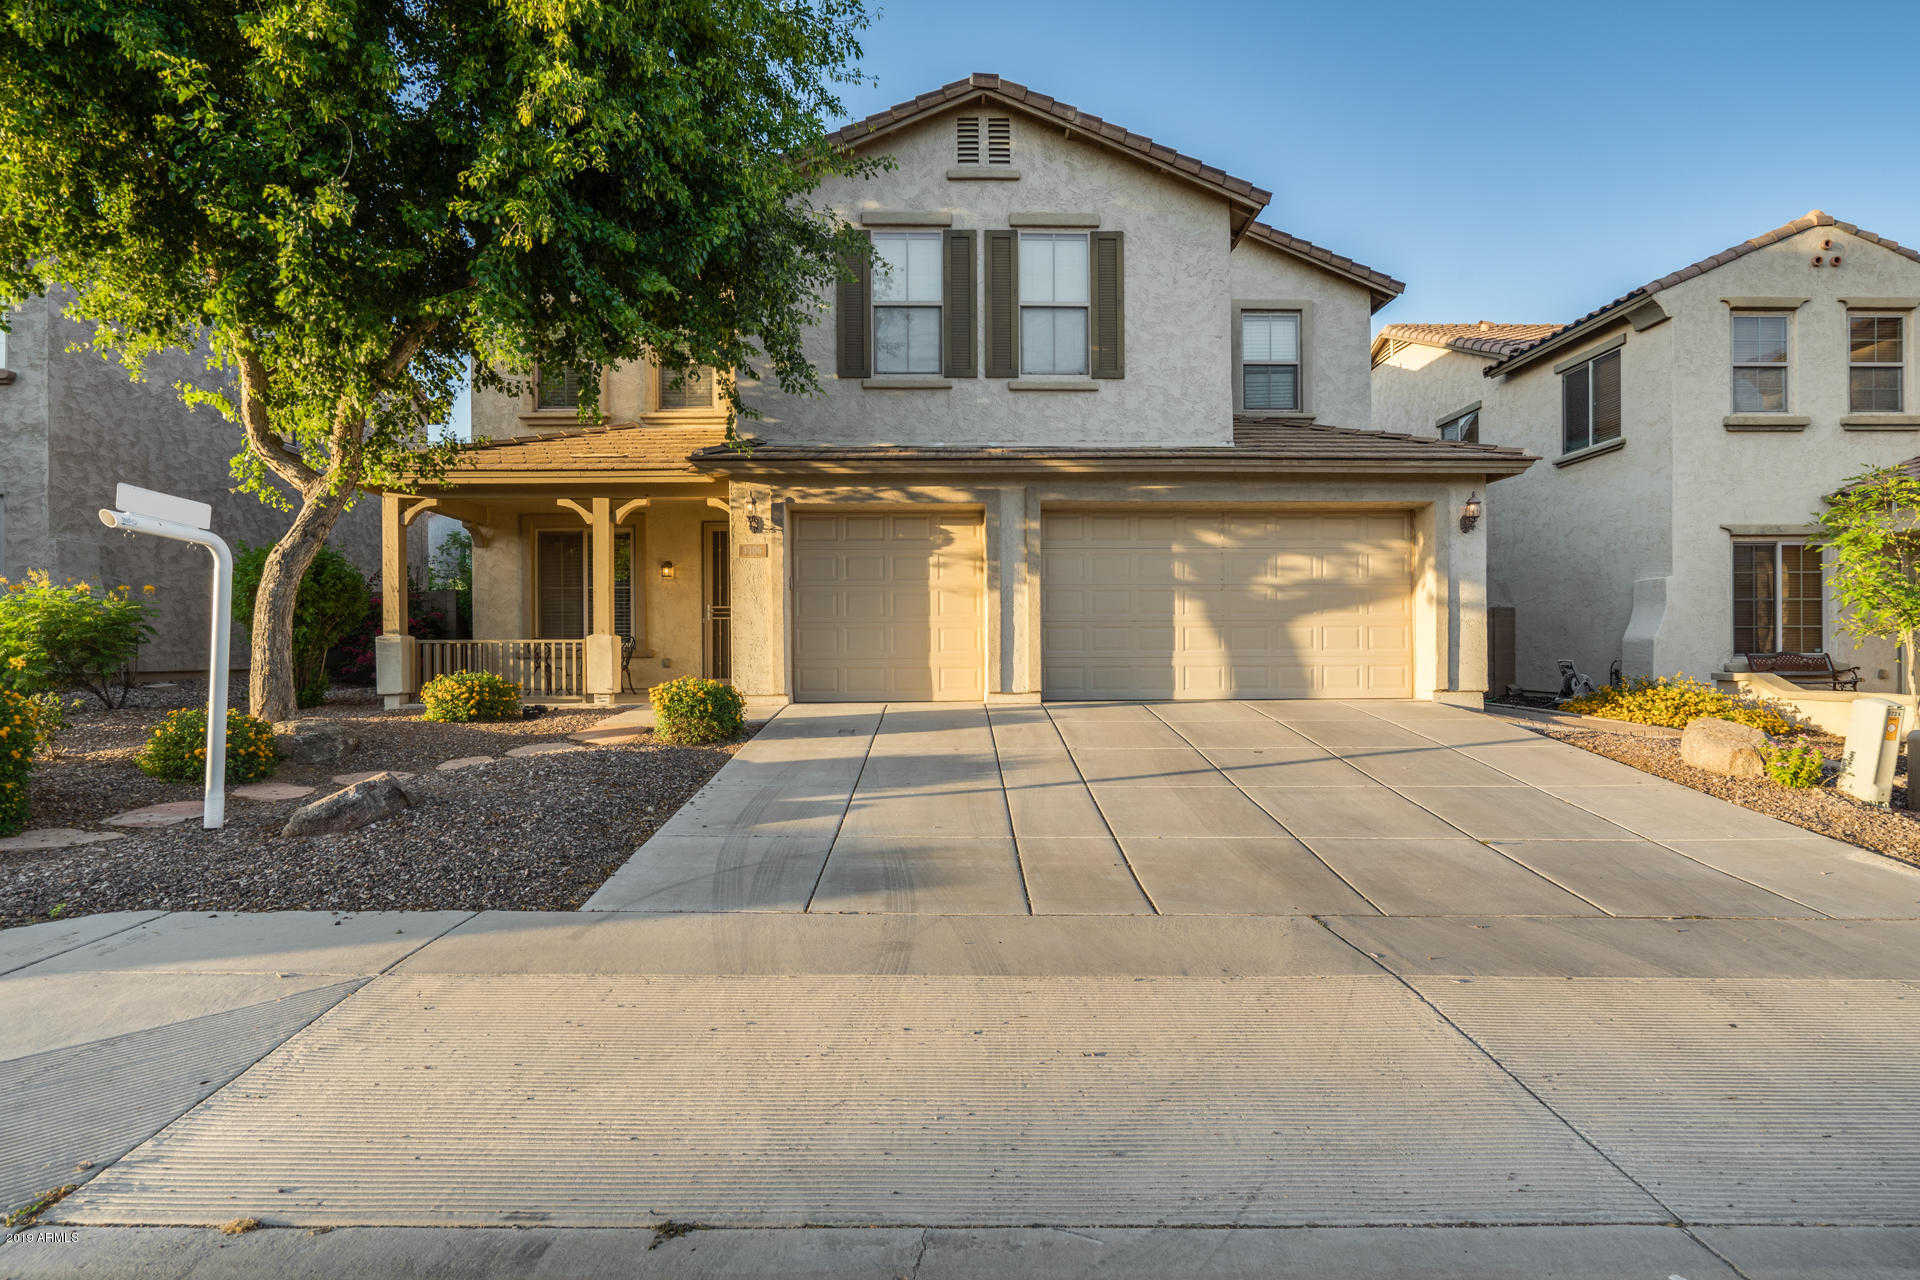 $474,900 - 6Br/4Ba - Home for Sale in Stetson Valley Parcel 34, Phoenix